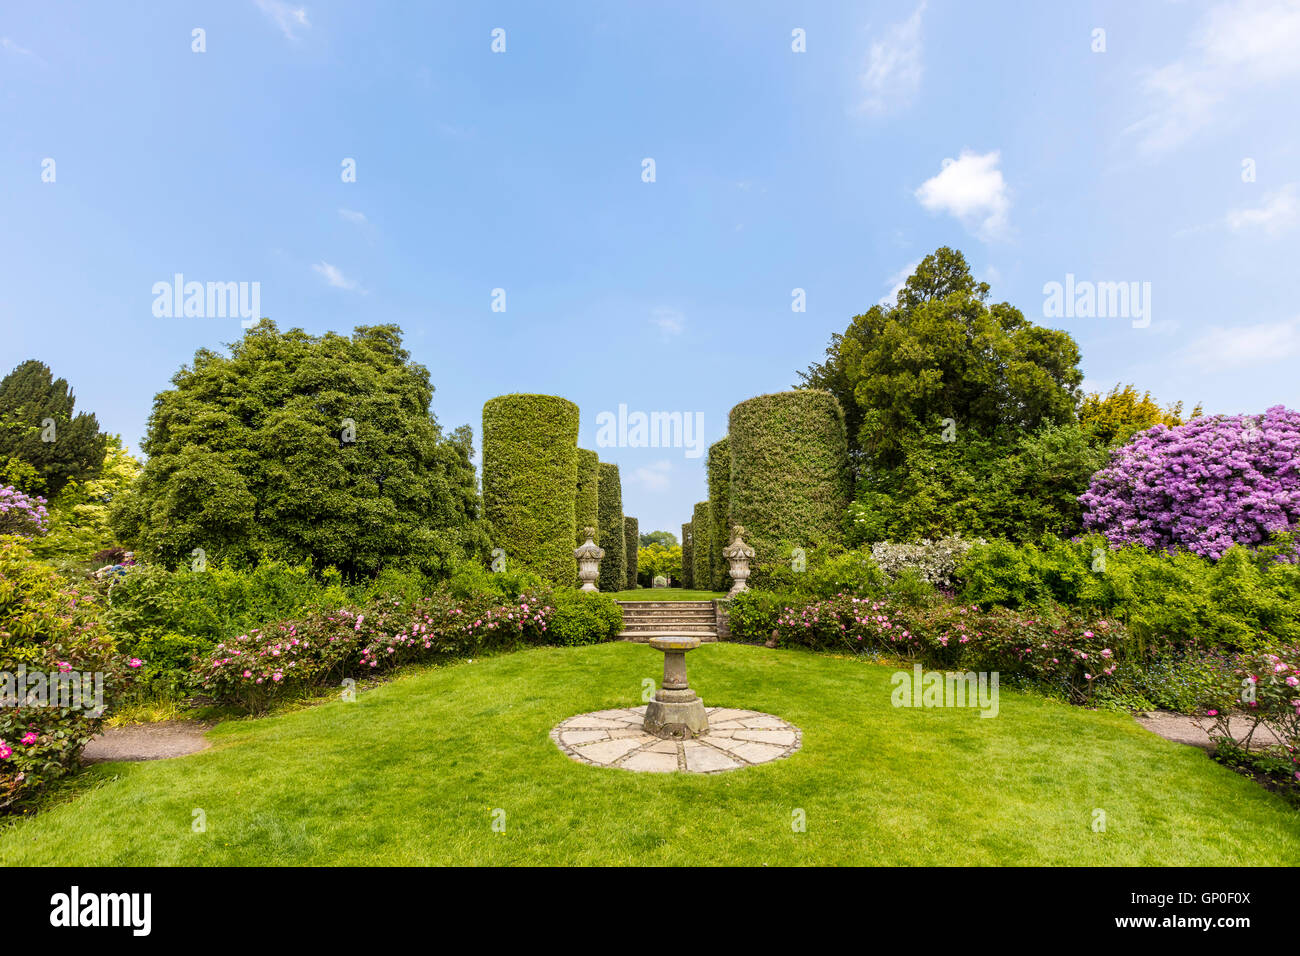 English country garden with sundial and topiary shrubs. - Stock Image